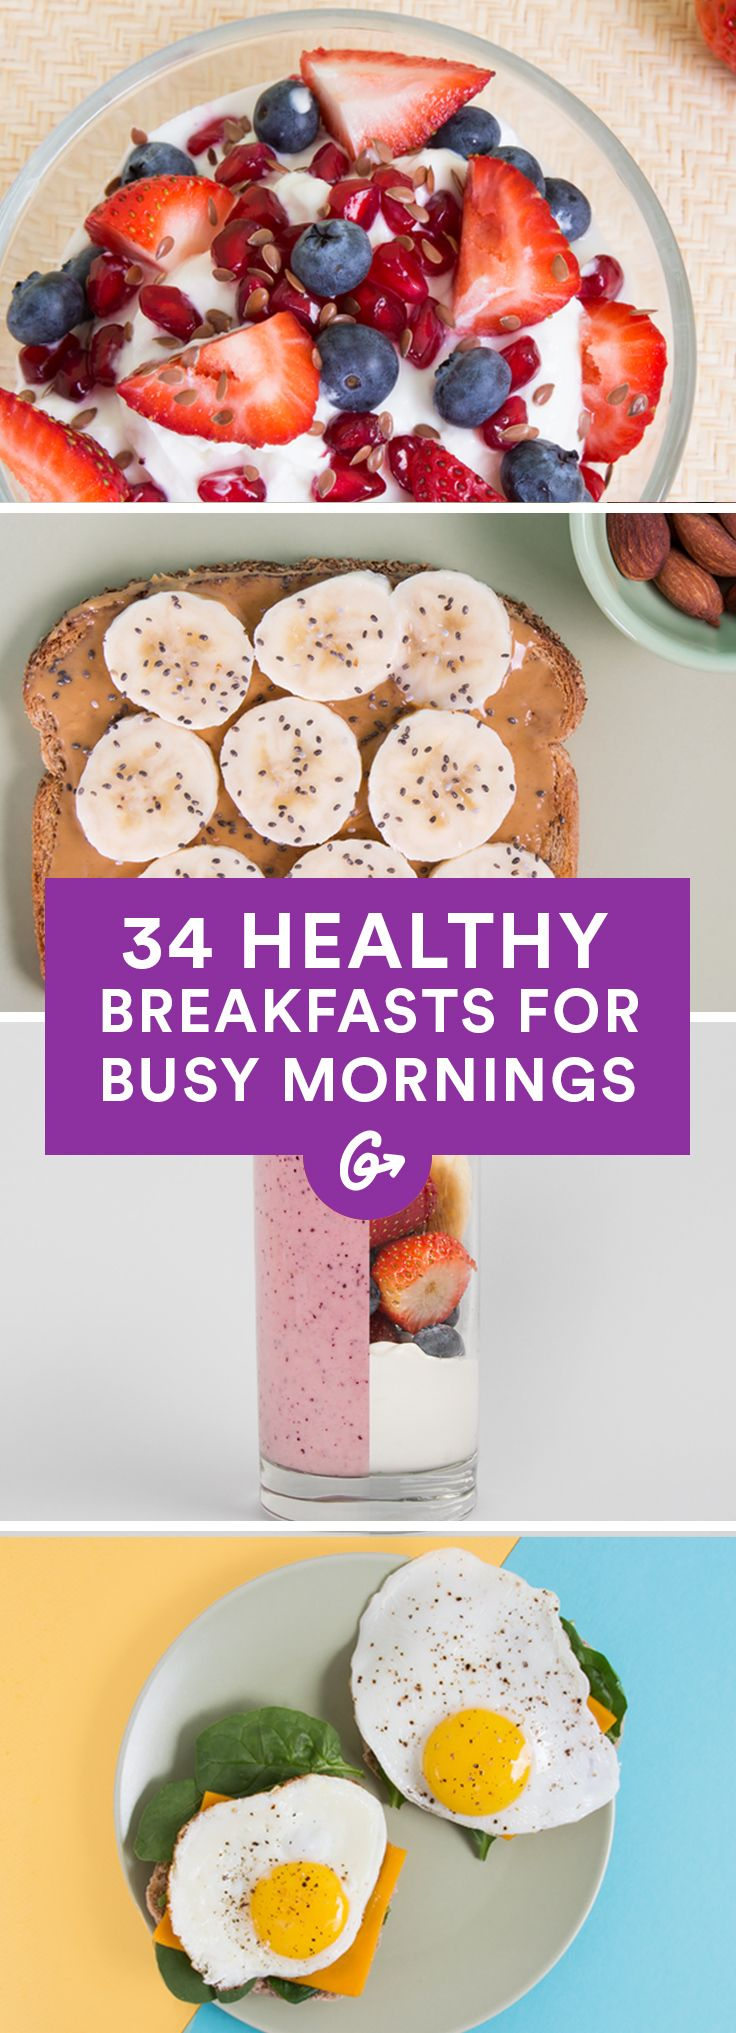 34 Easy High-Protein Breakfasts Thatll Help You Lose Weight 34 Easy High-Protein Breakfasts Thatll Help You Lose Weight new picture